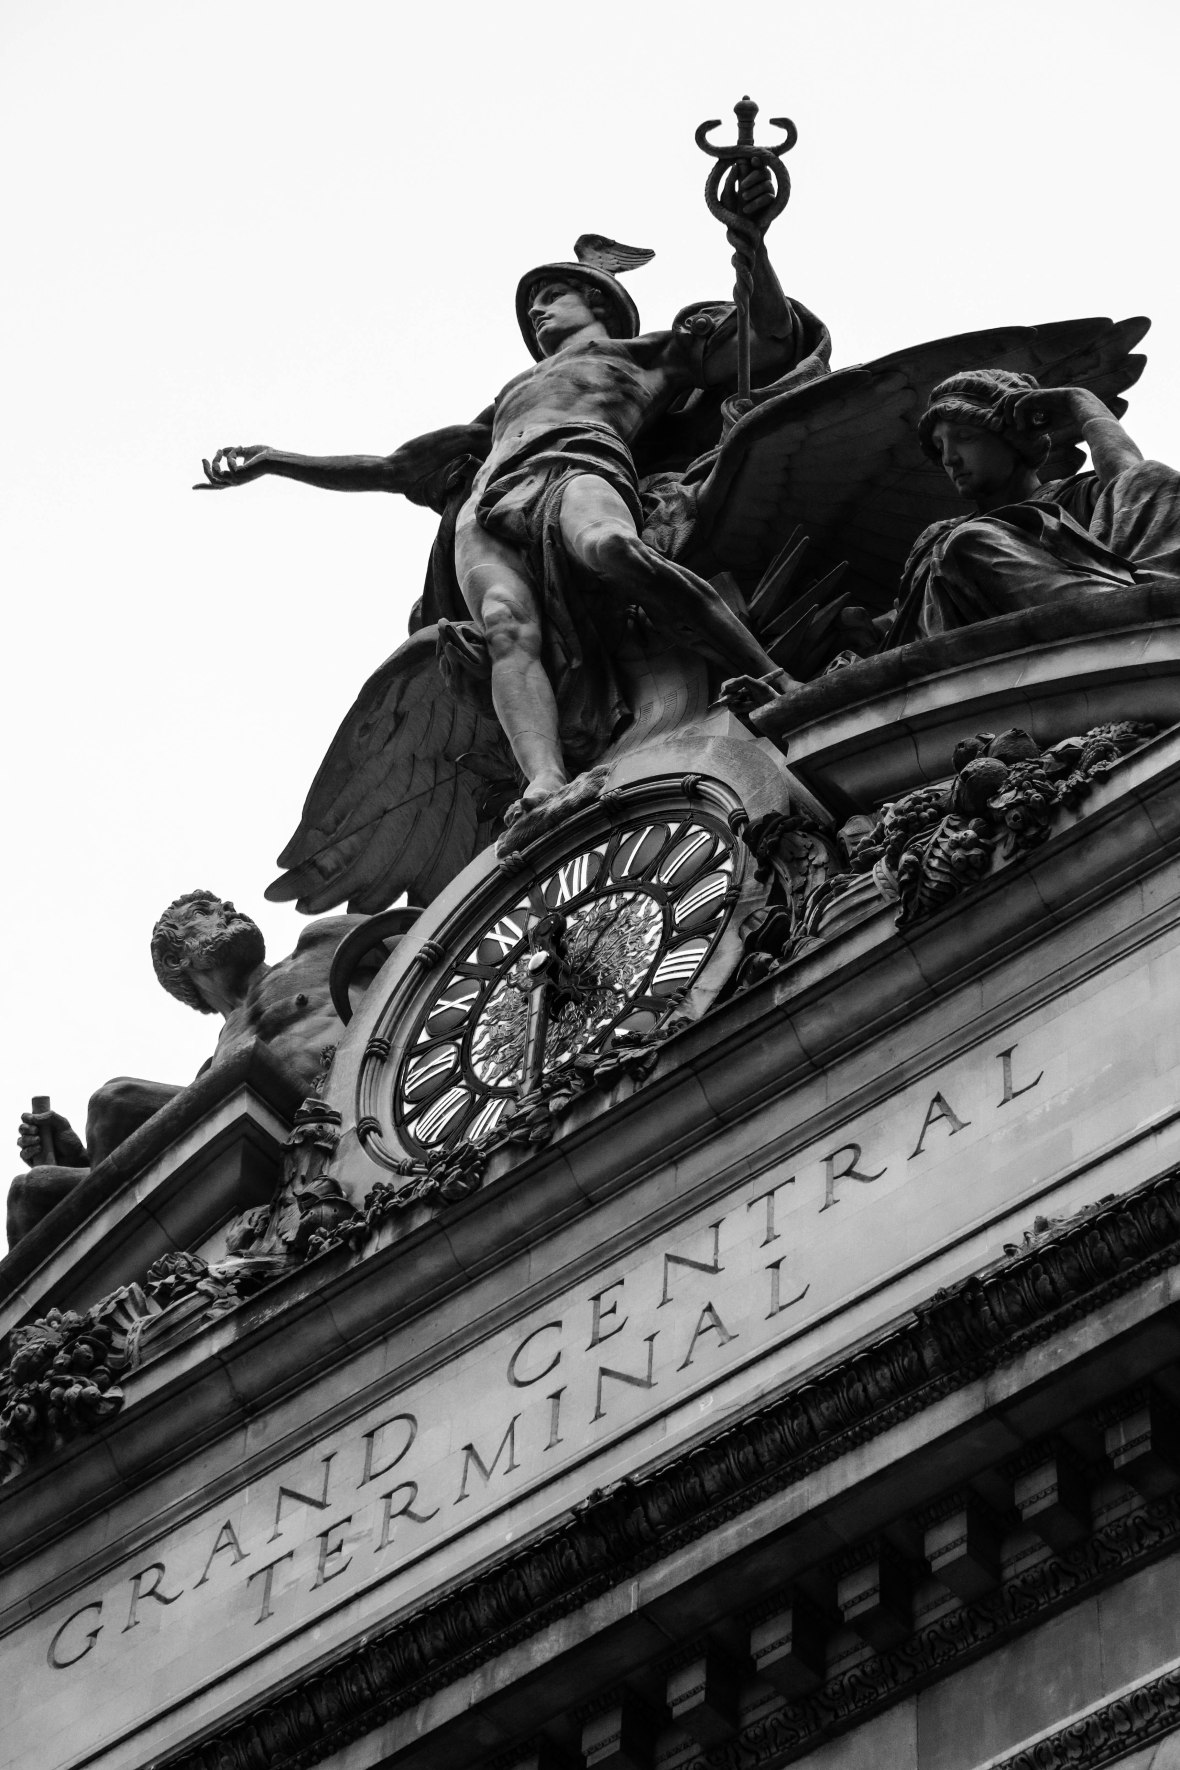 B&W Portrait: Grand Central Station Statue